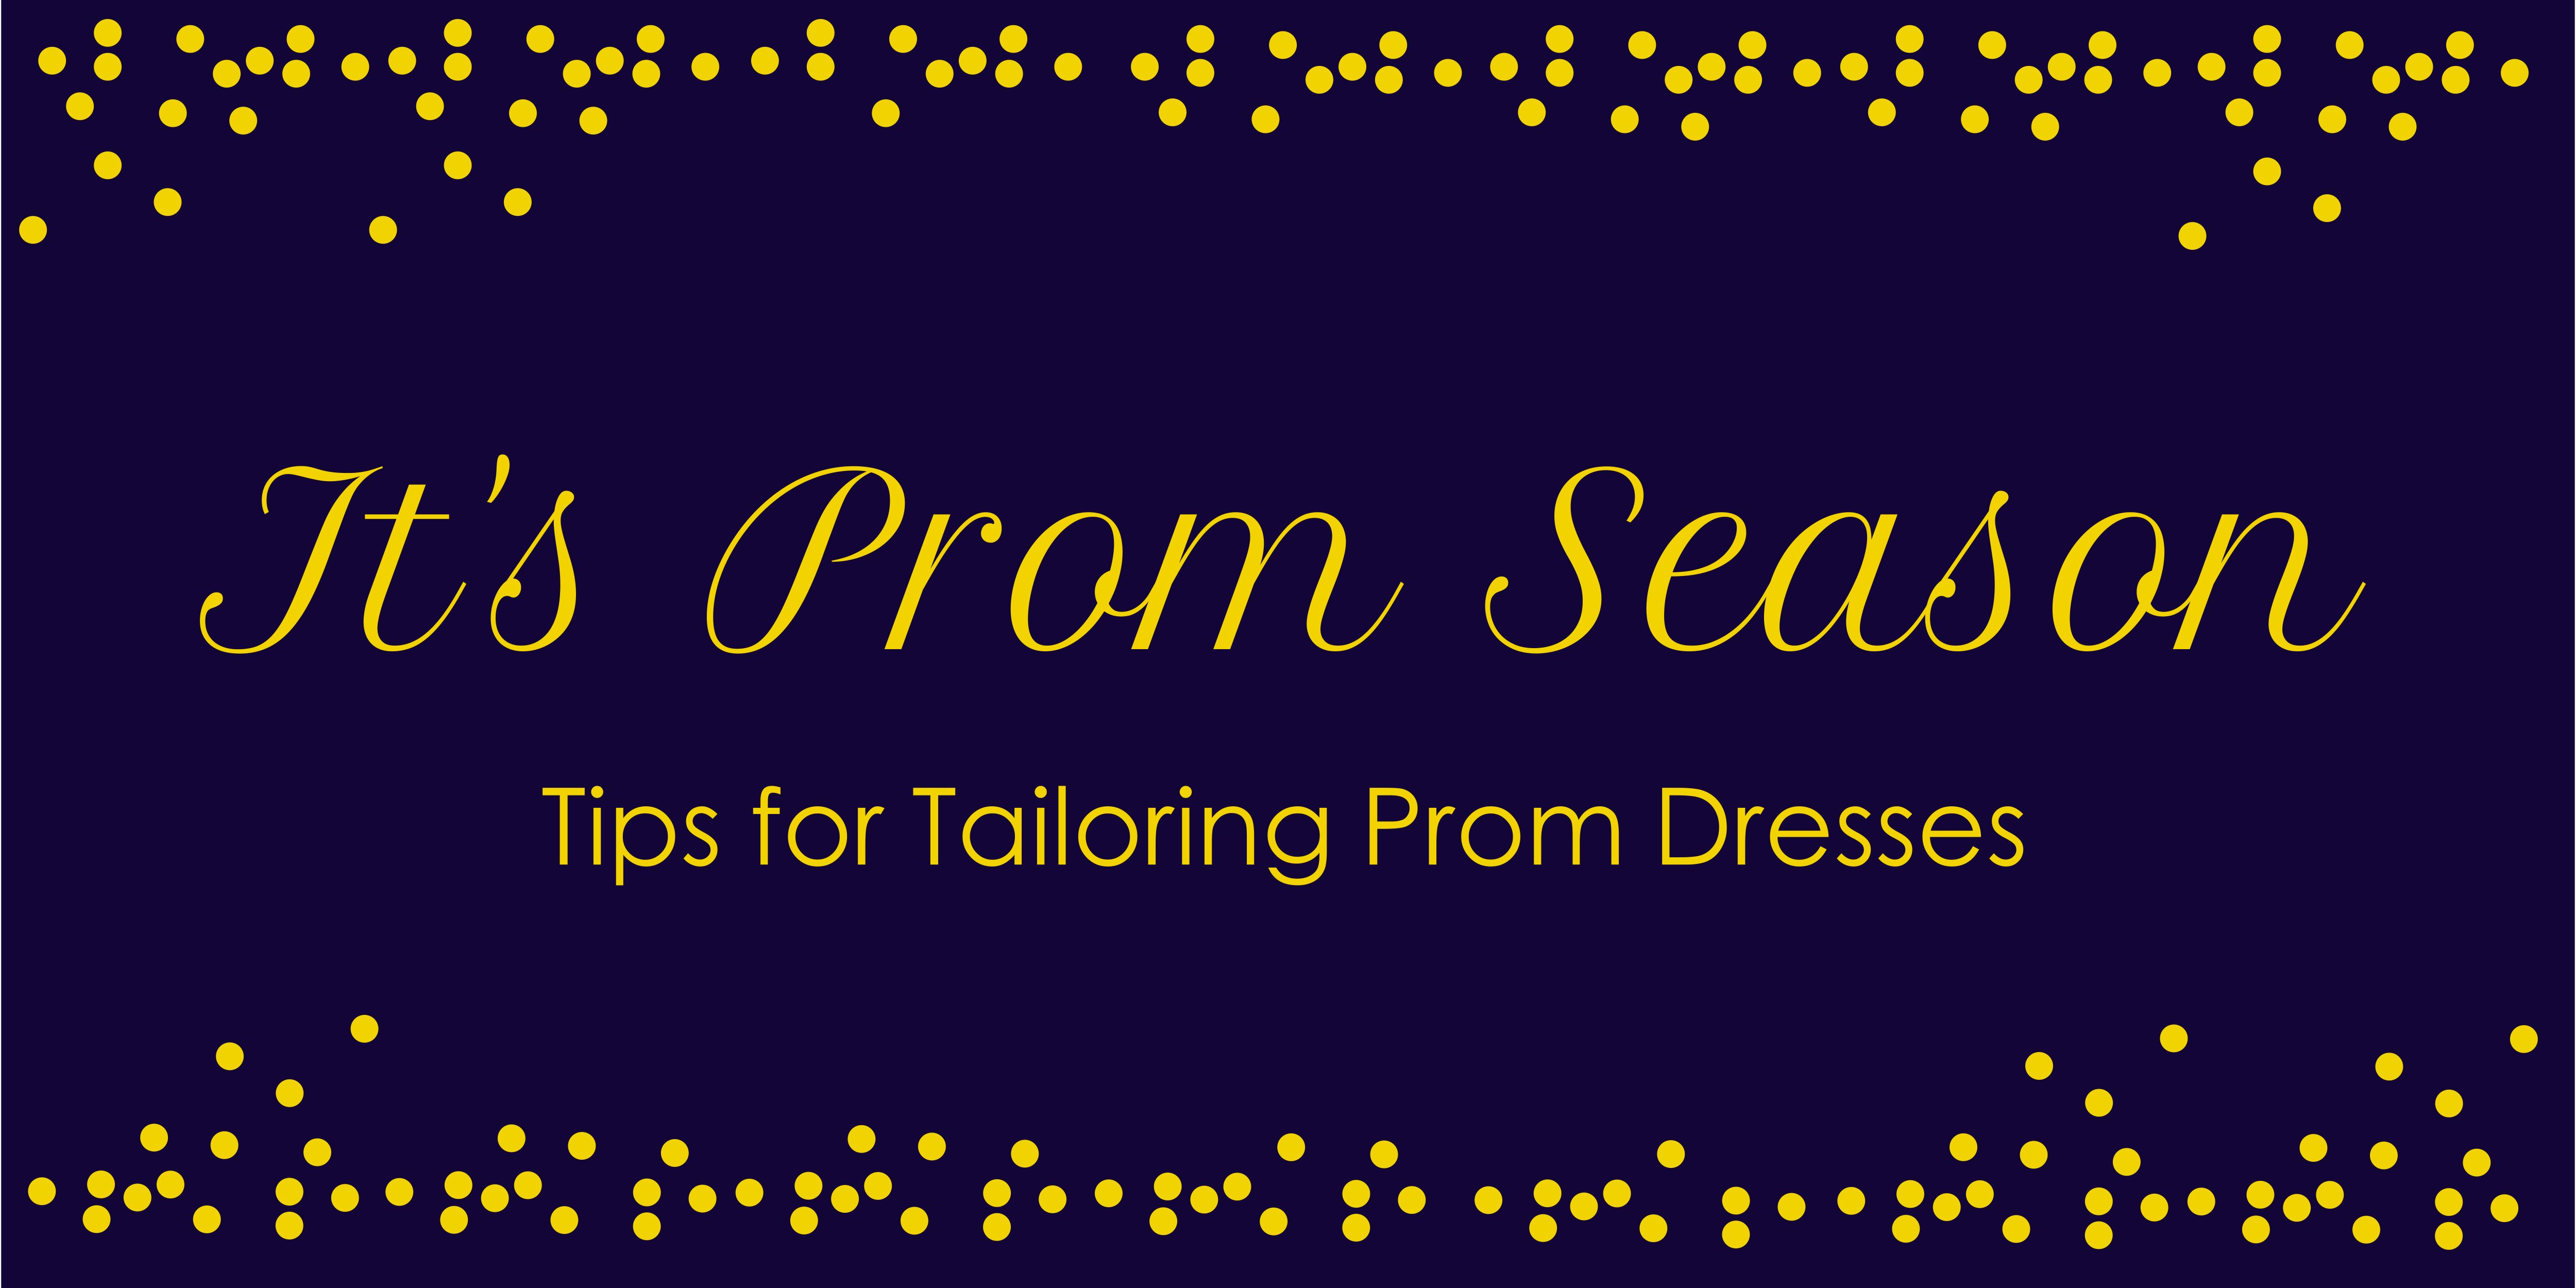 Tips for Tailoring Prom Dresses